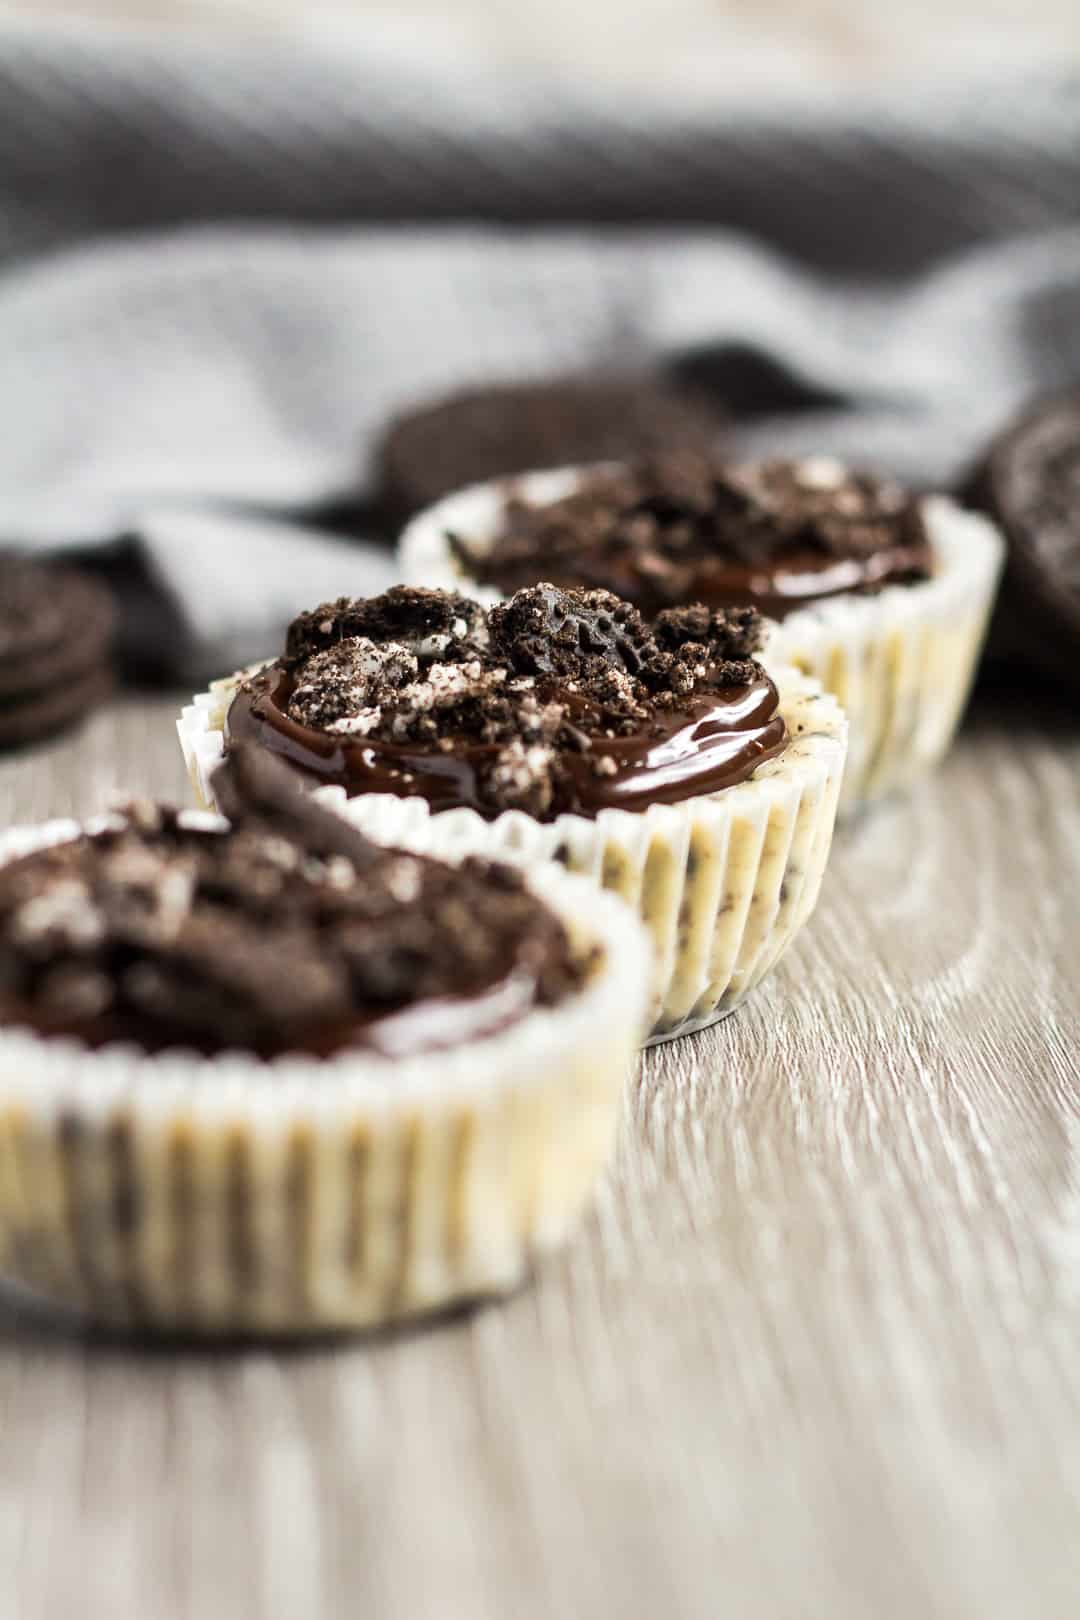 A row of three Mini Oreo Cheesecakes topped with chocolate ganache and crushed Oreos.